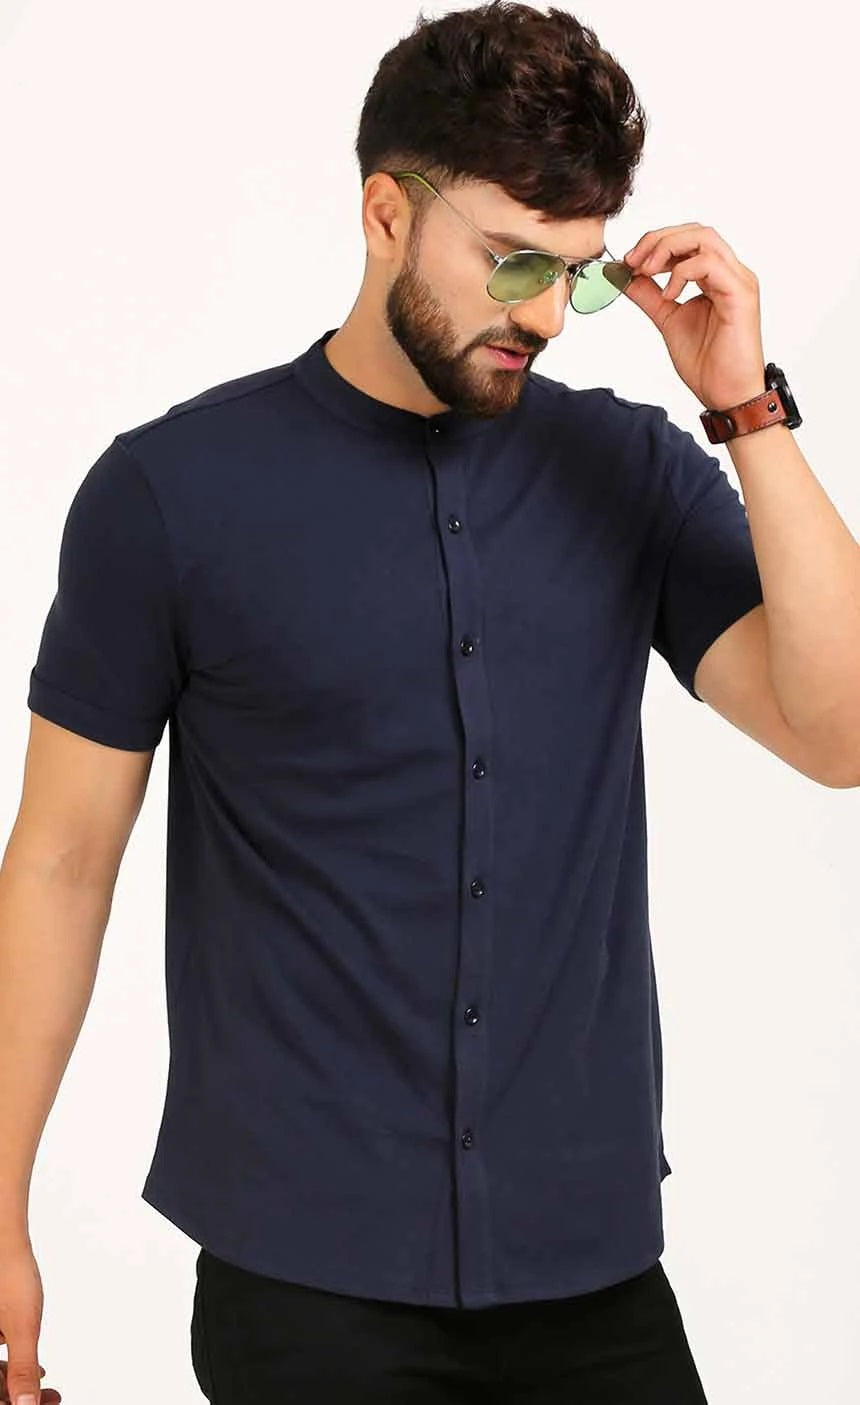 SHIRT STYLE T SHIRT IN NAVY BLUE